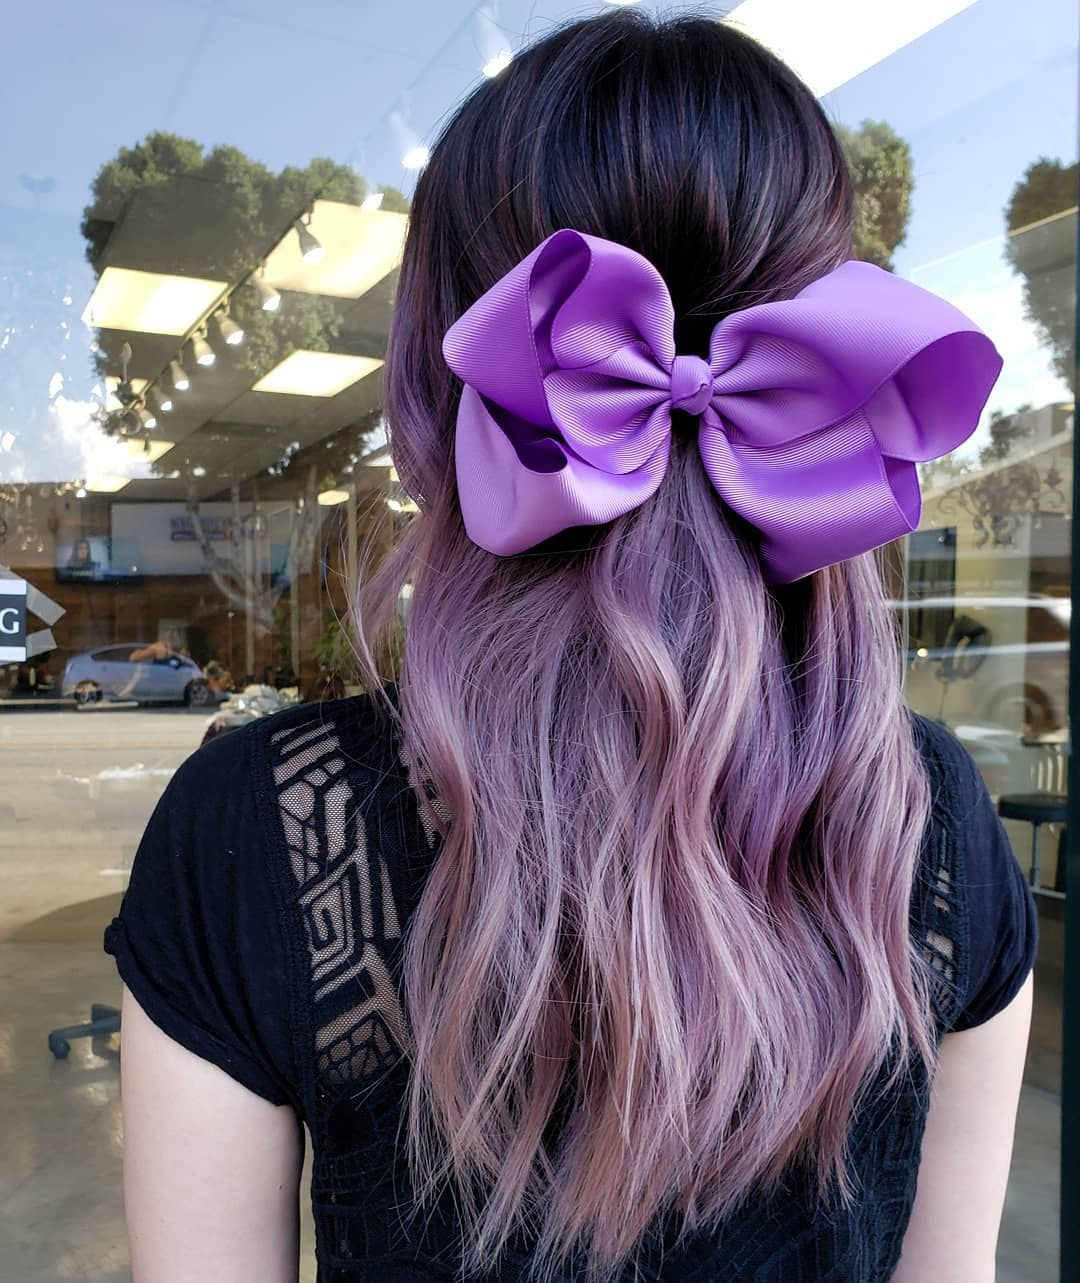 Image result for Lilac headband instagram